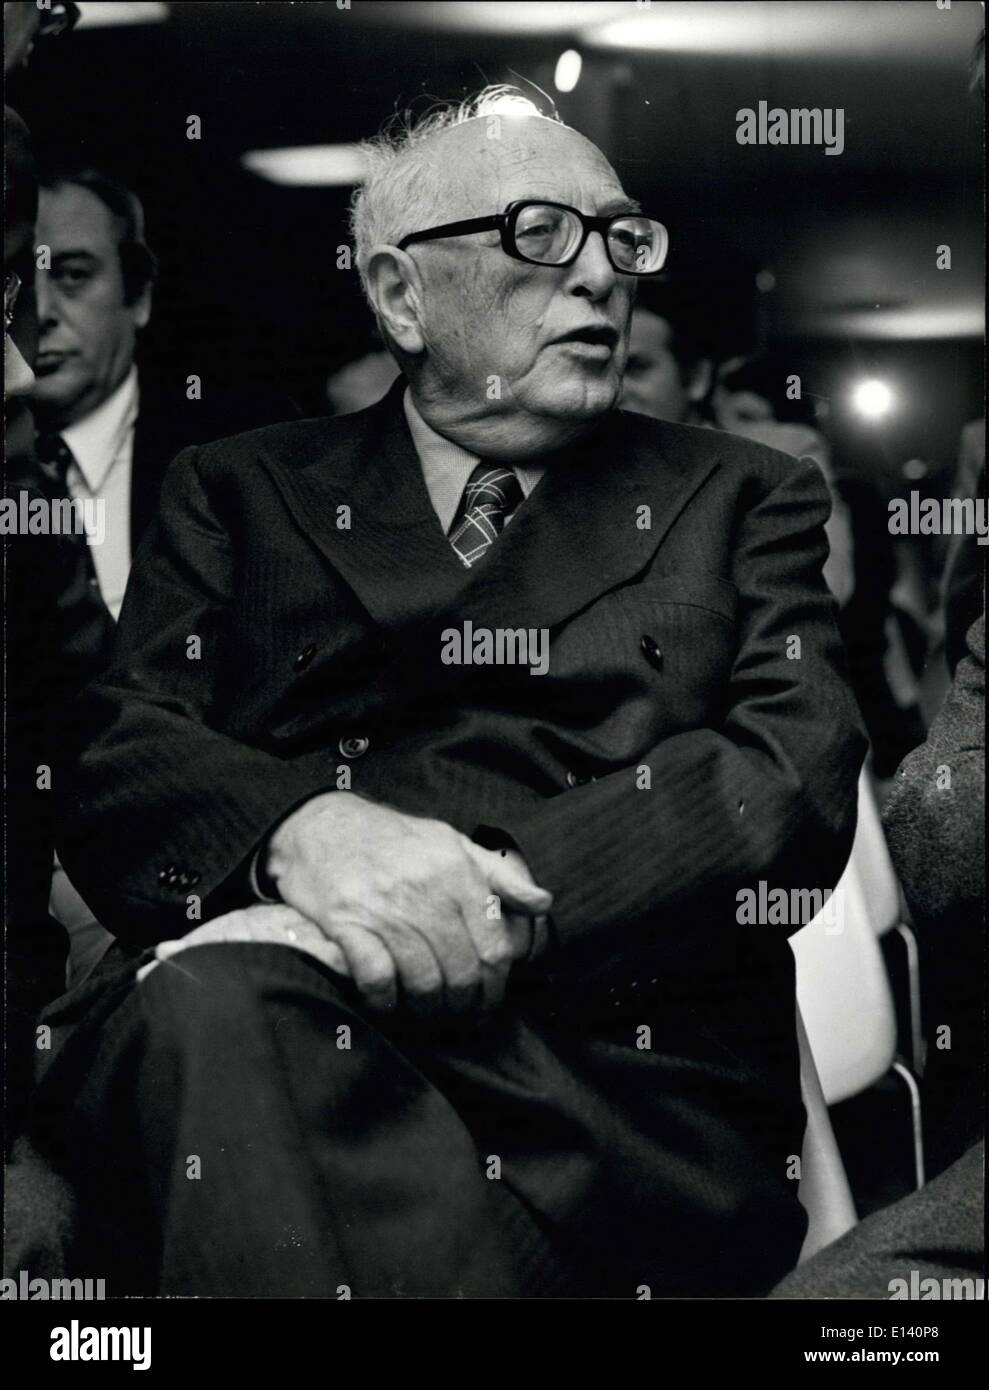 Mar. 31, 2012 - Old socialist leader Peitro Nenni, 82, was elected president of the PSI (Italian Socialist Party) during the works of the Central Committe of the Party. Sen Nenni is one of the most representative figures of the entifascist leaders. Photo shows old leader Pietro Nenni, 82. - Stock Image